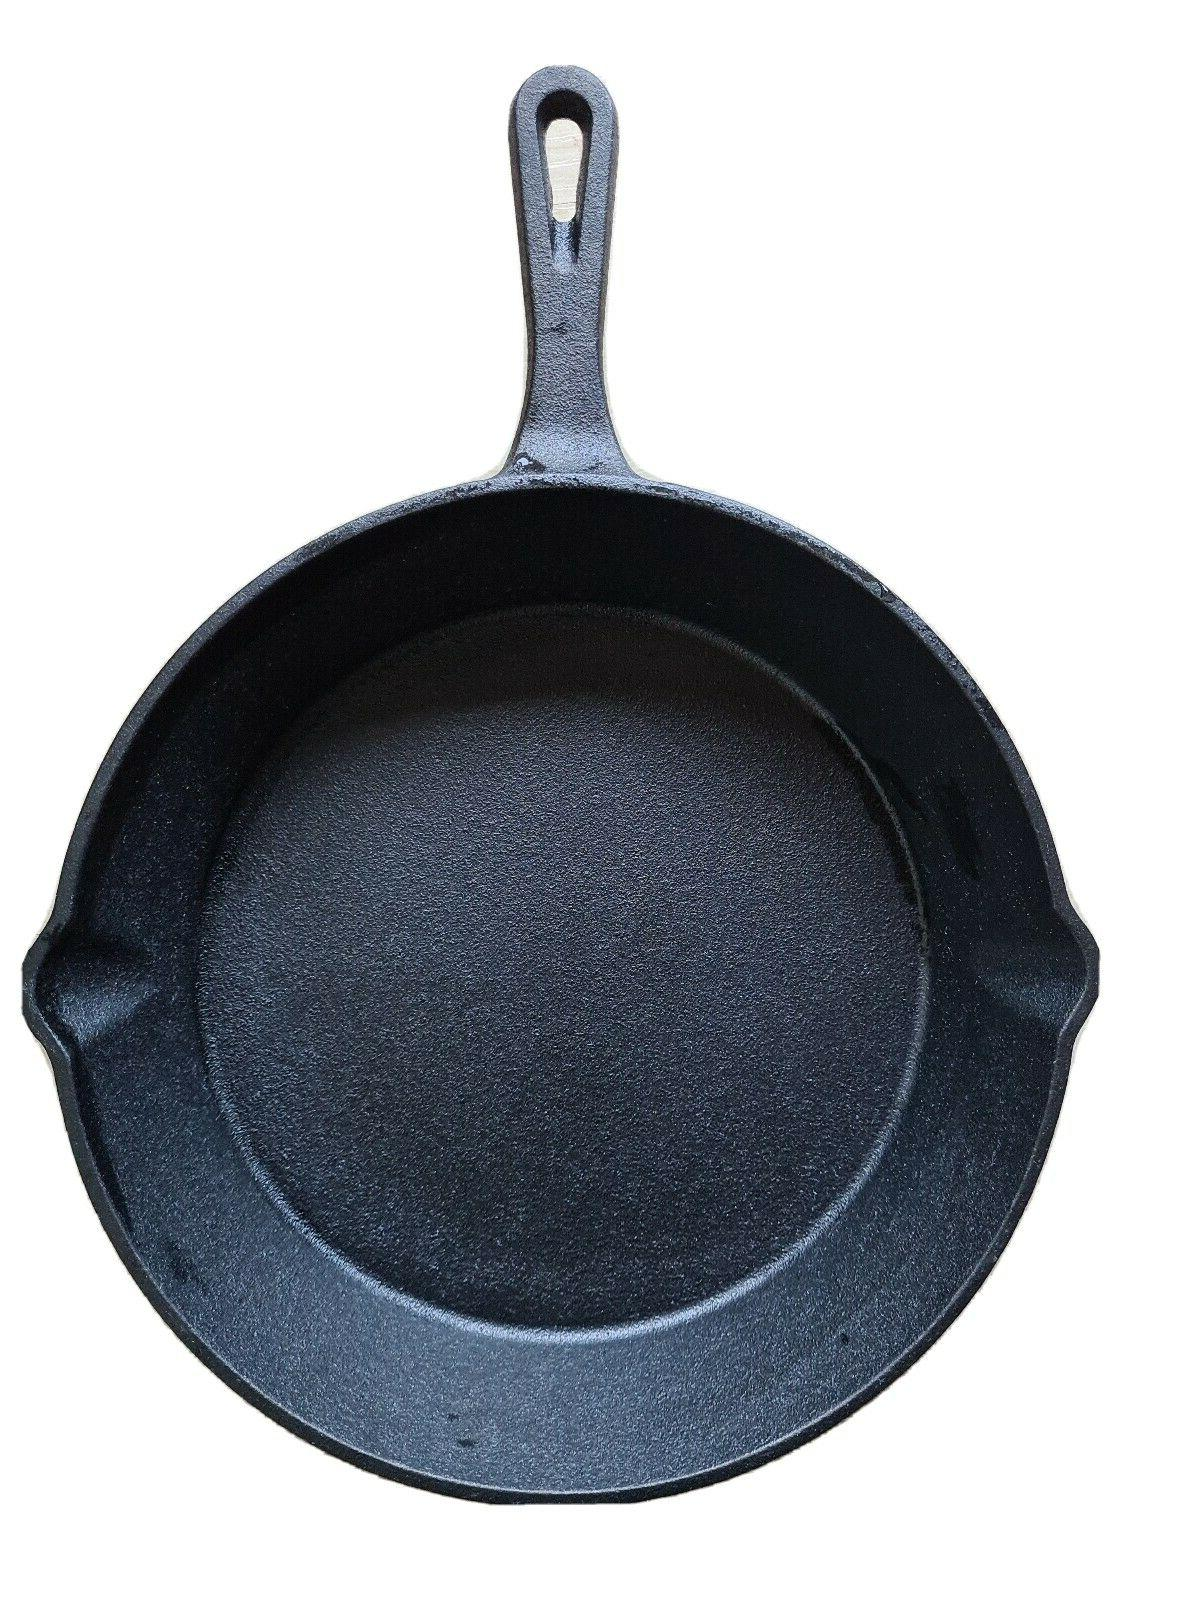 cast iron skillet 10 inch fry pan